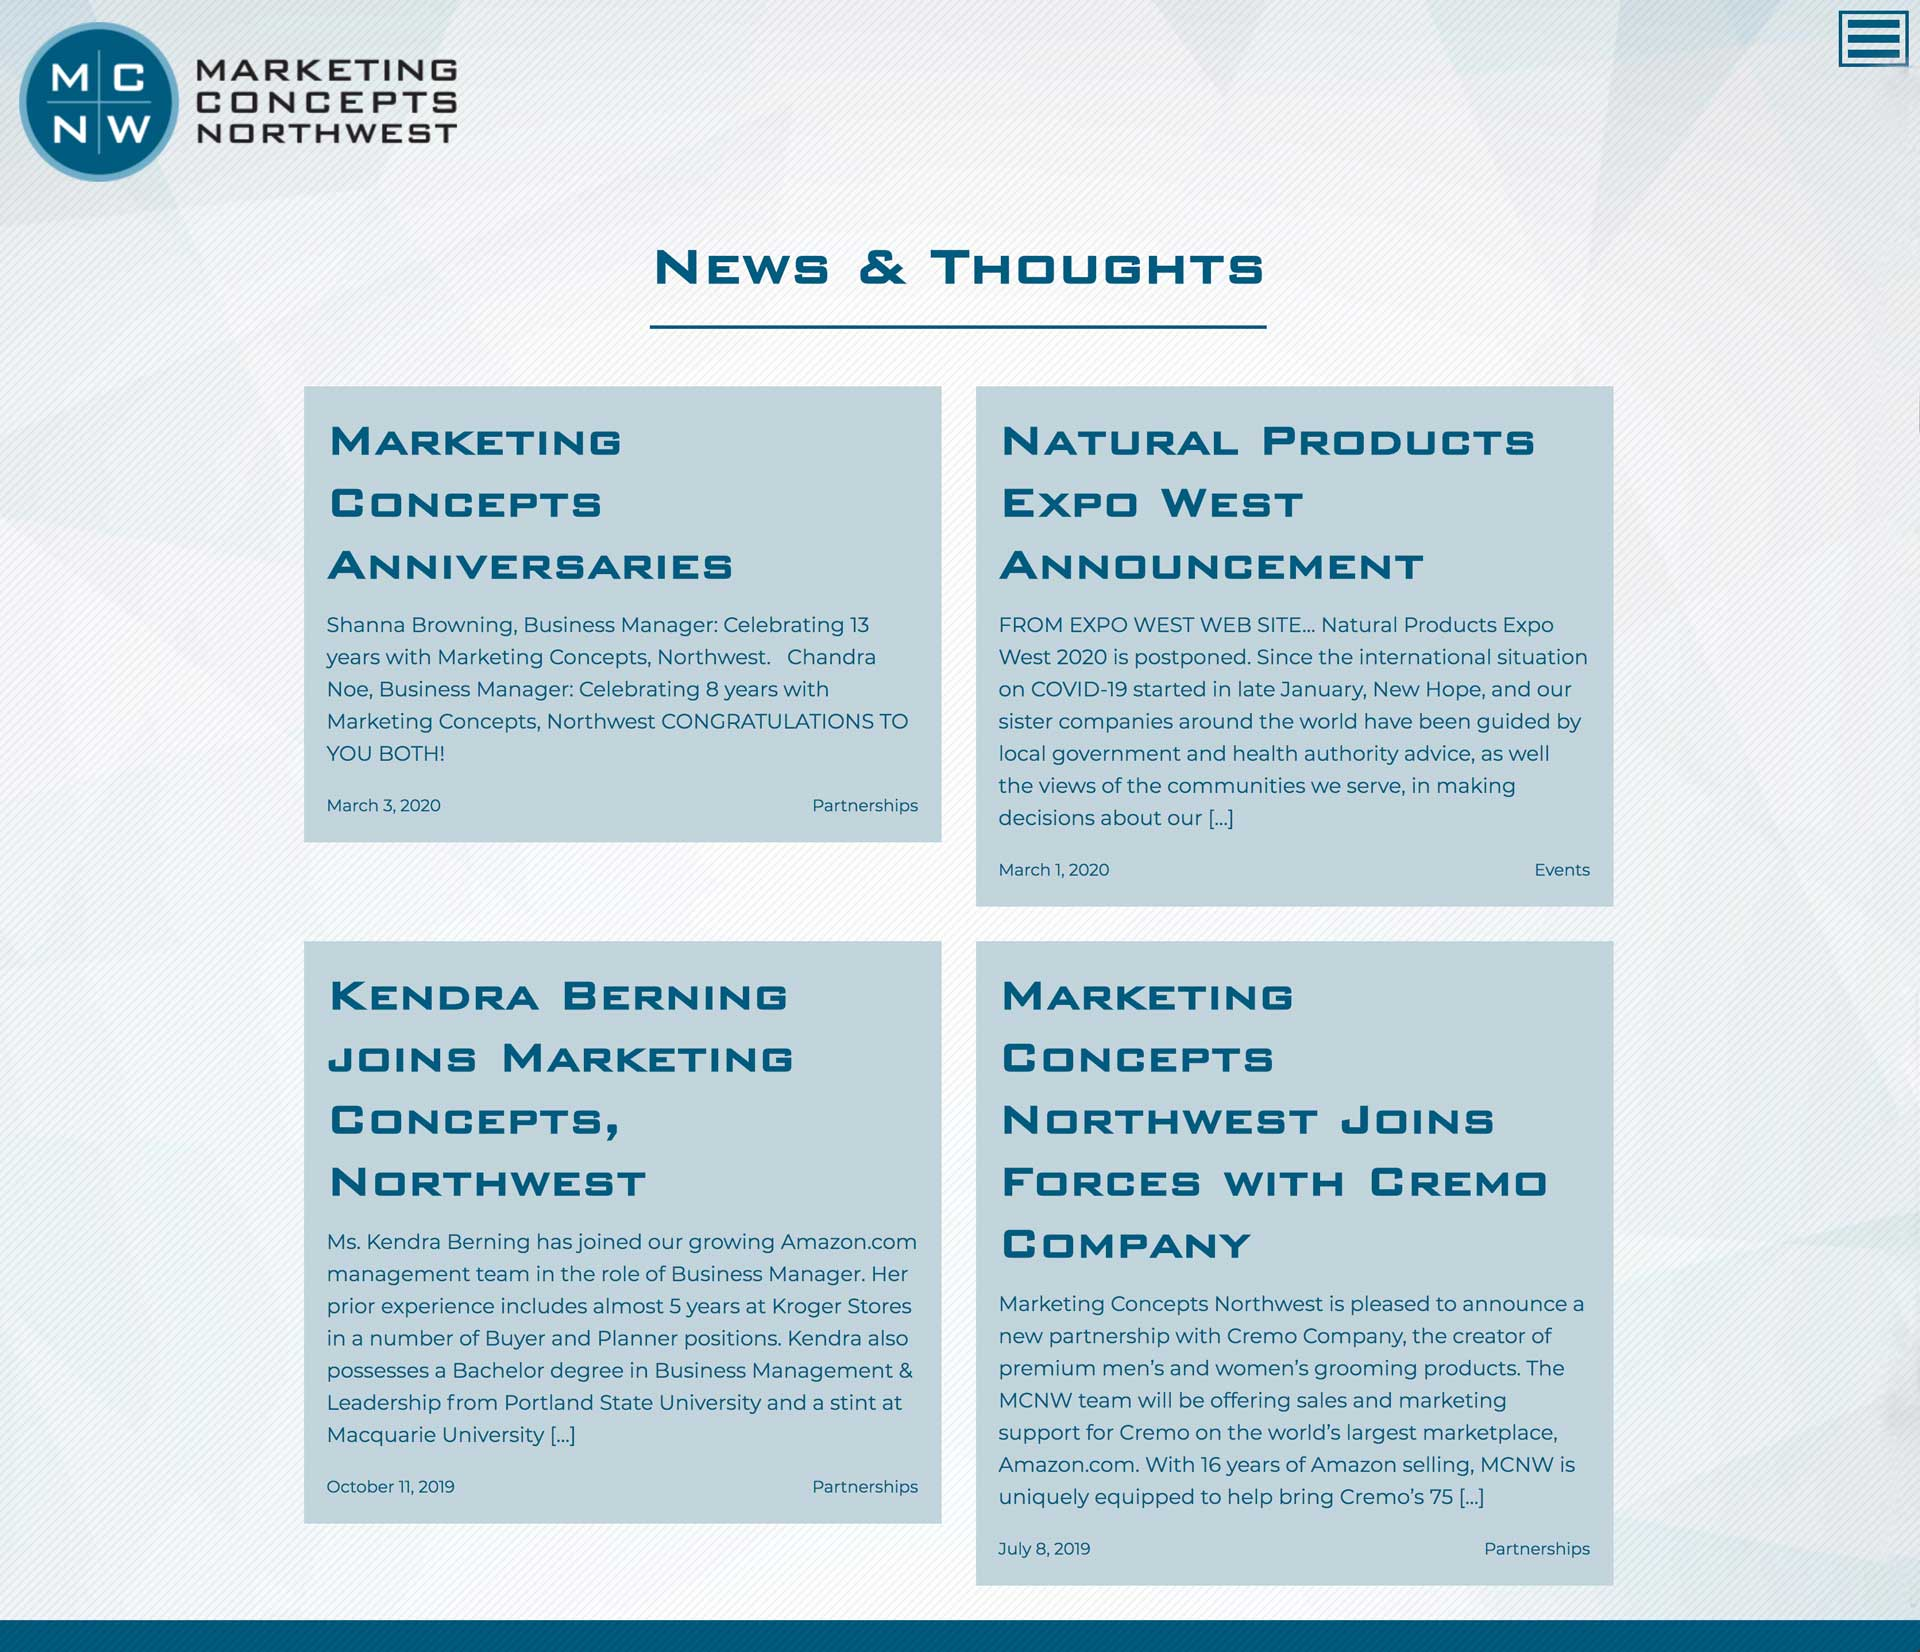 mcnw news and thoughts webpage designed by outside communications